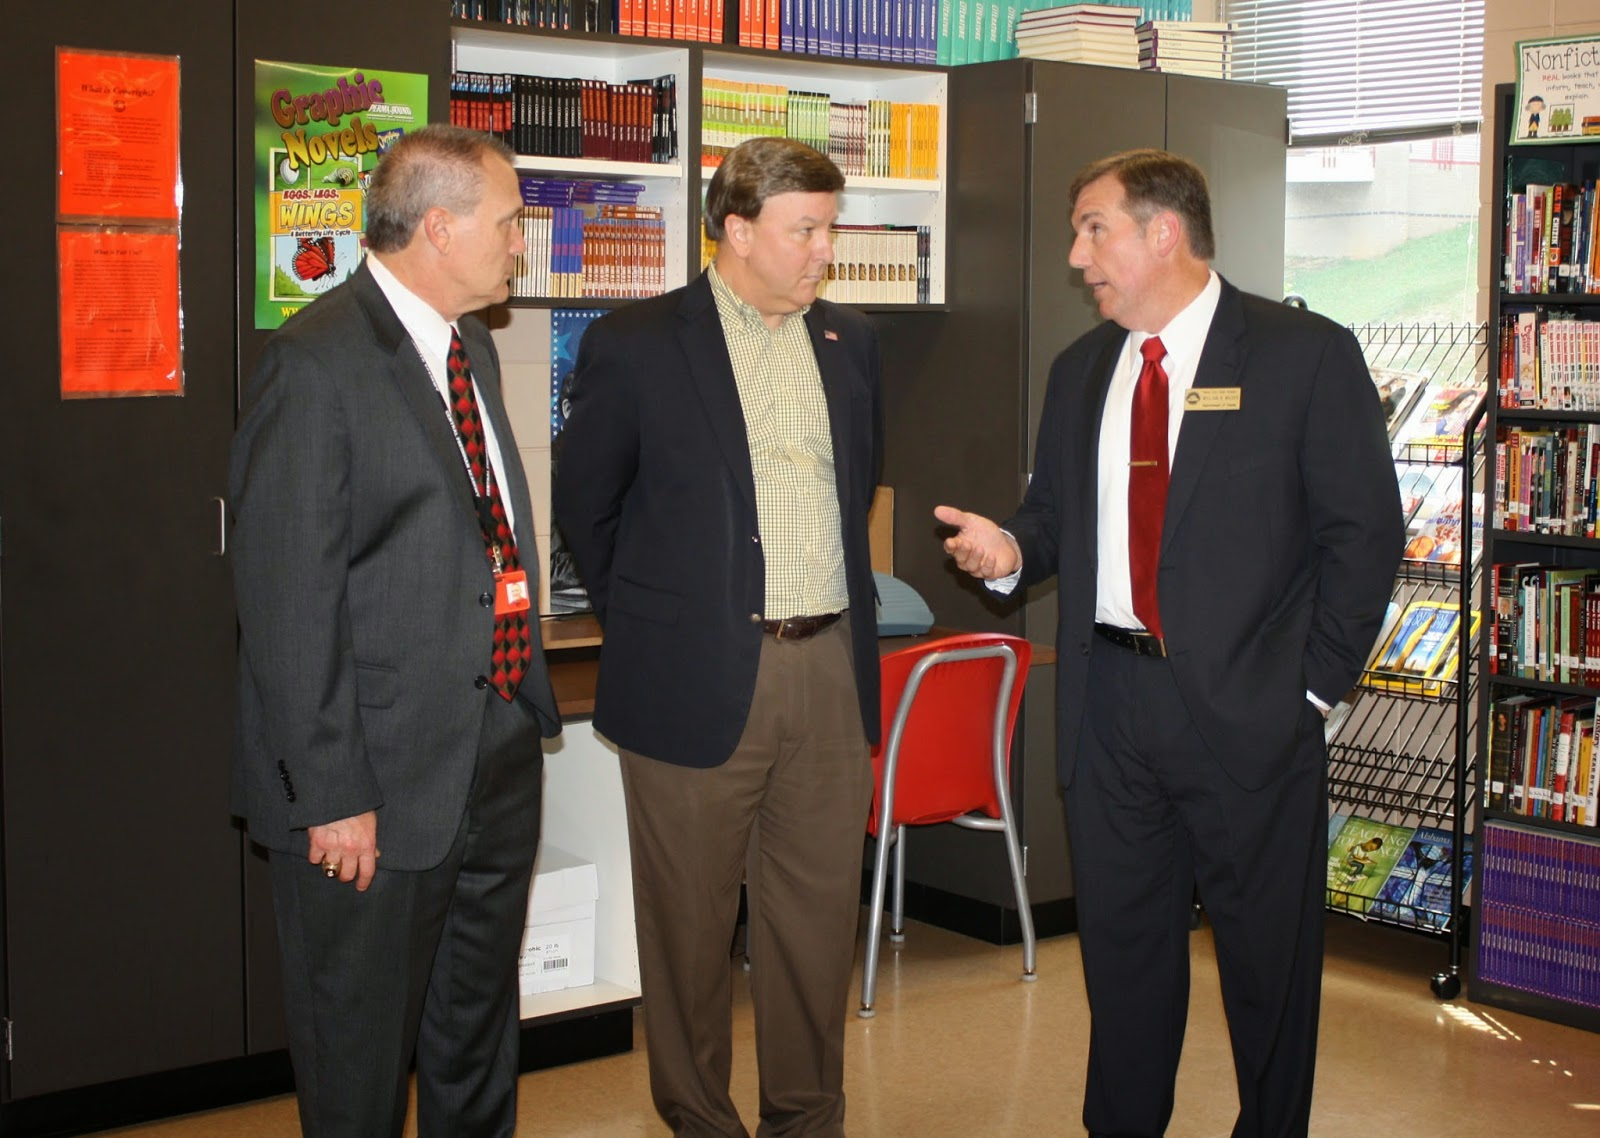 congressman mike rogers s pcs the supe s kitchen mr sikes congressman rogers and mr wilkes discuss the cfa media center